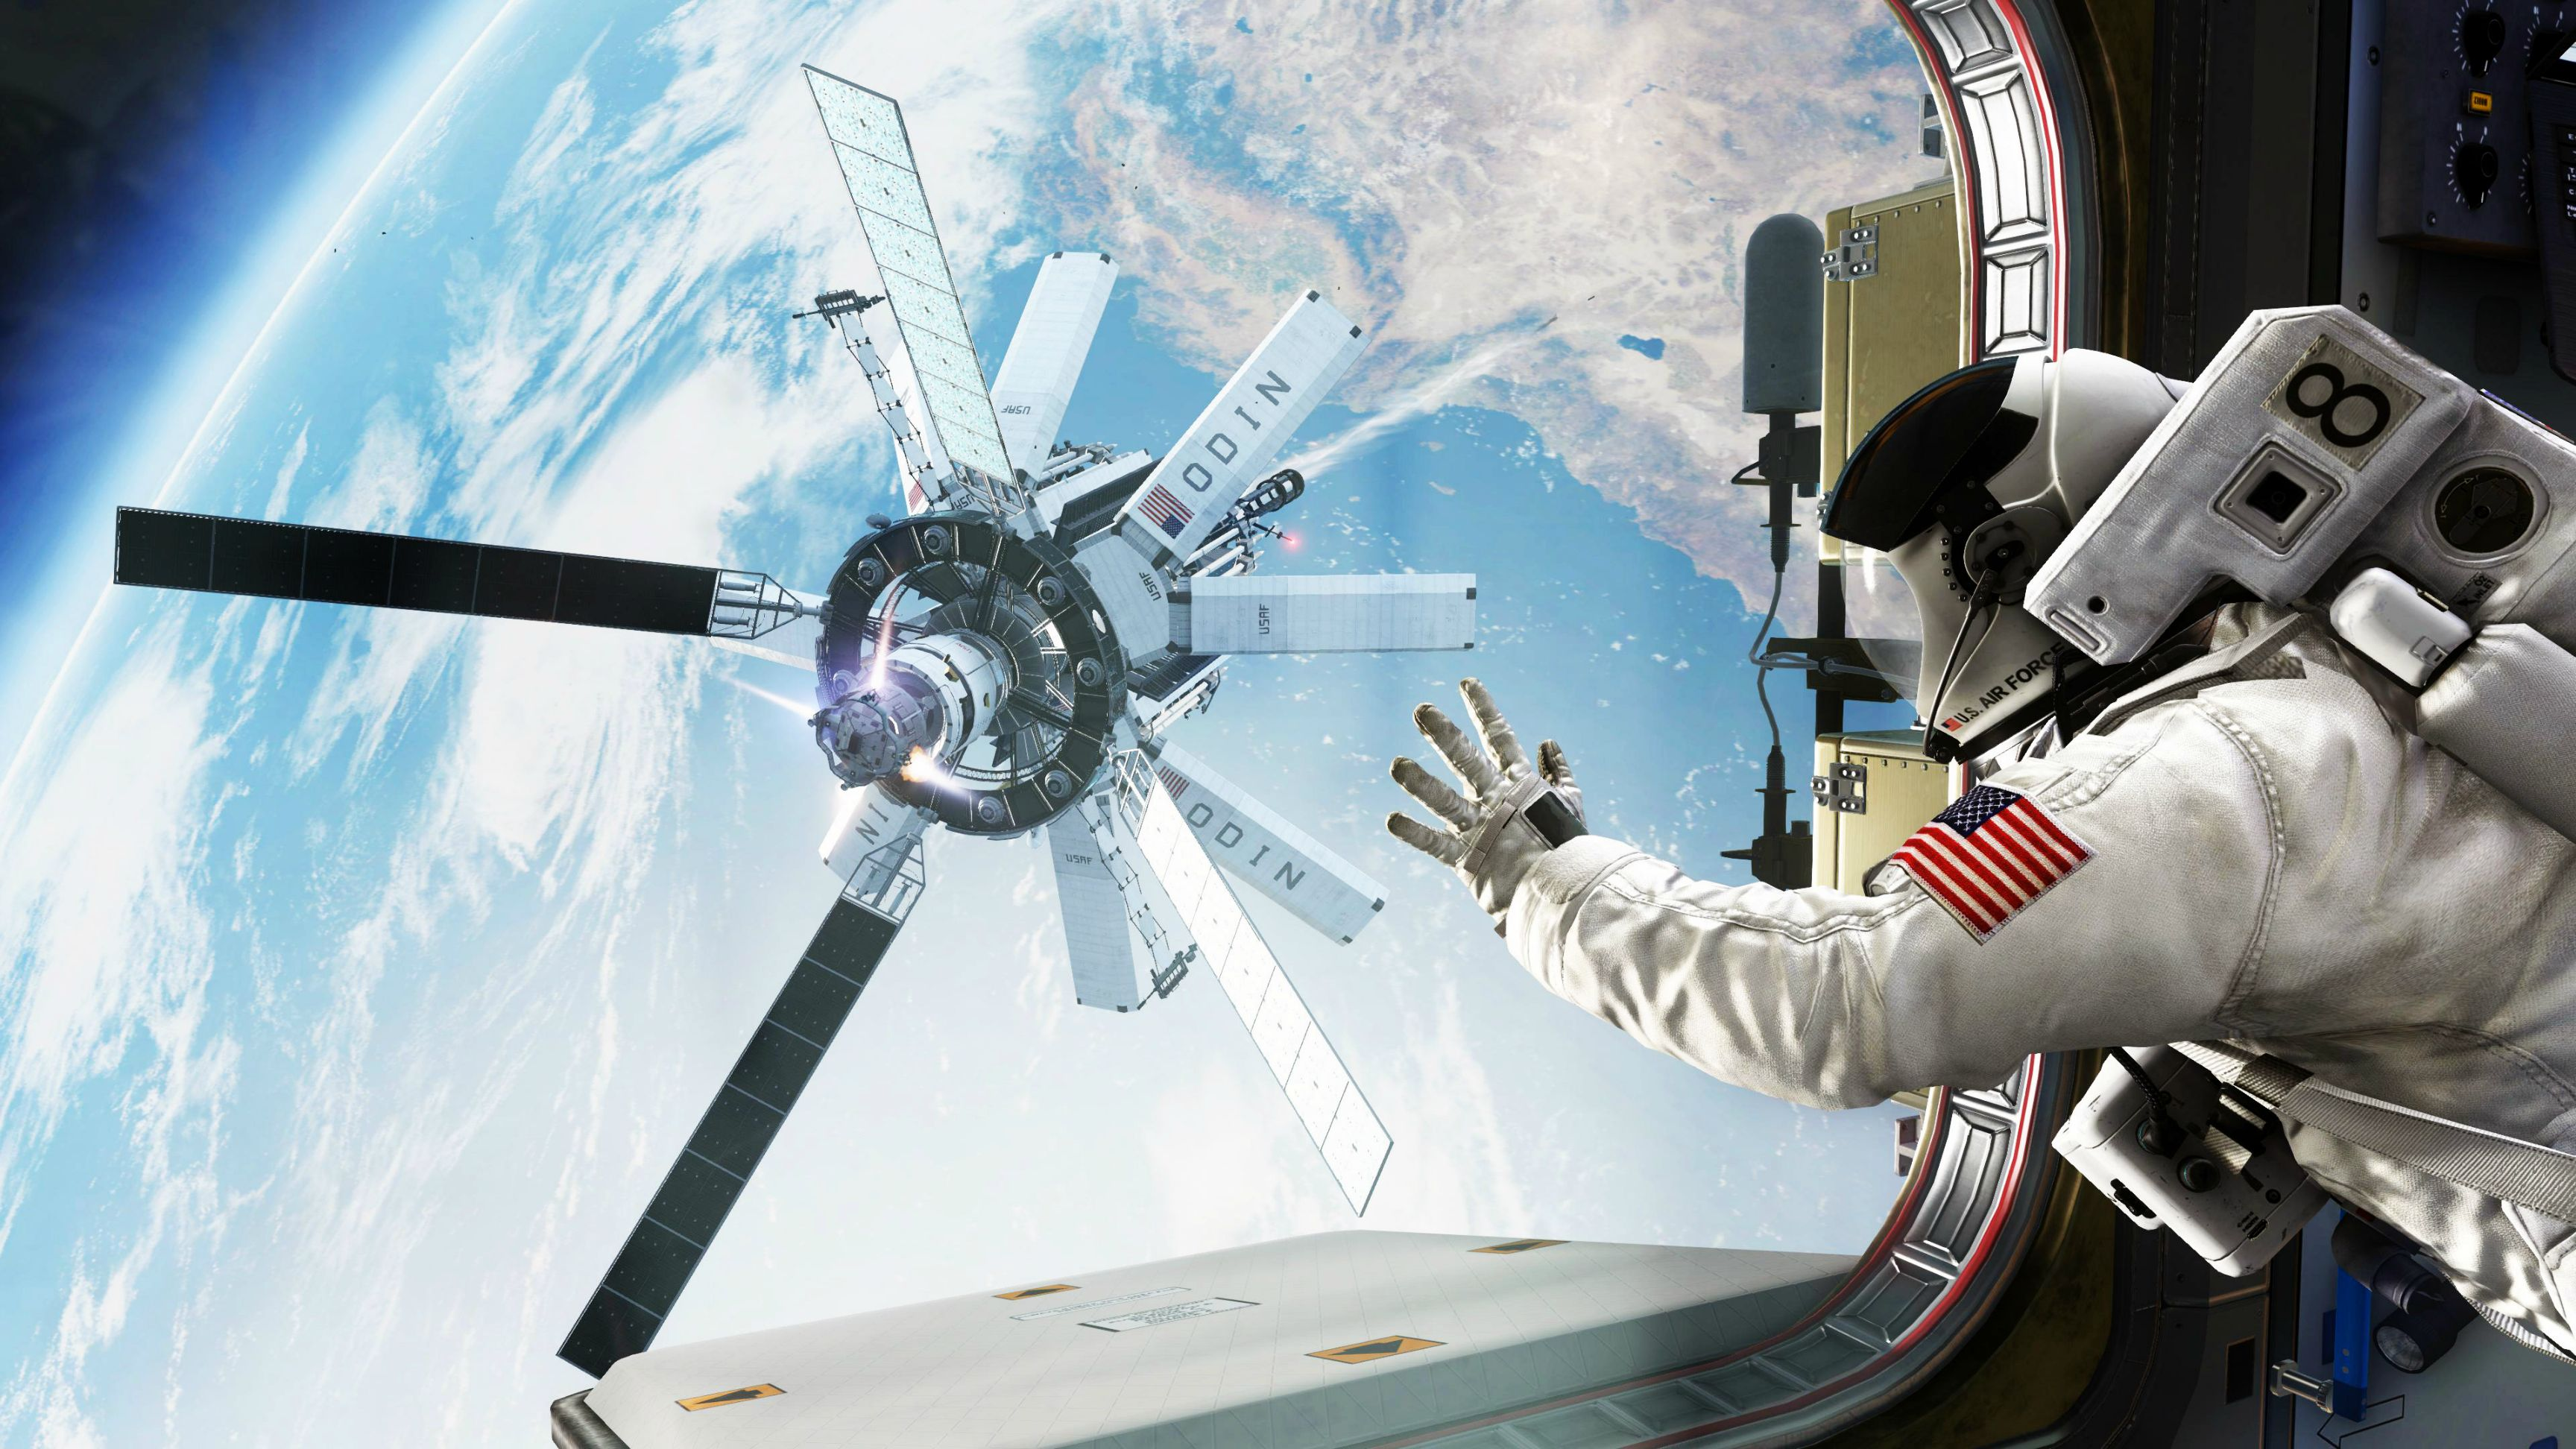 Space station hd wallpaper background image 3456x1944 - Space station wallpaper ...